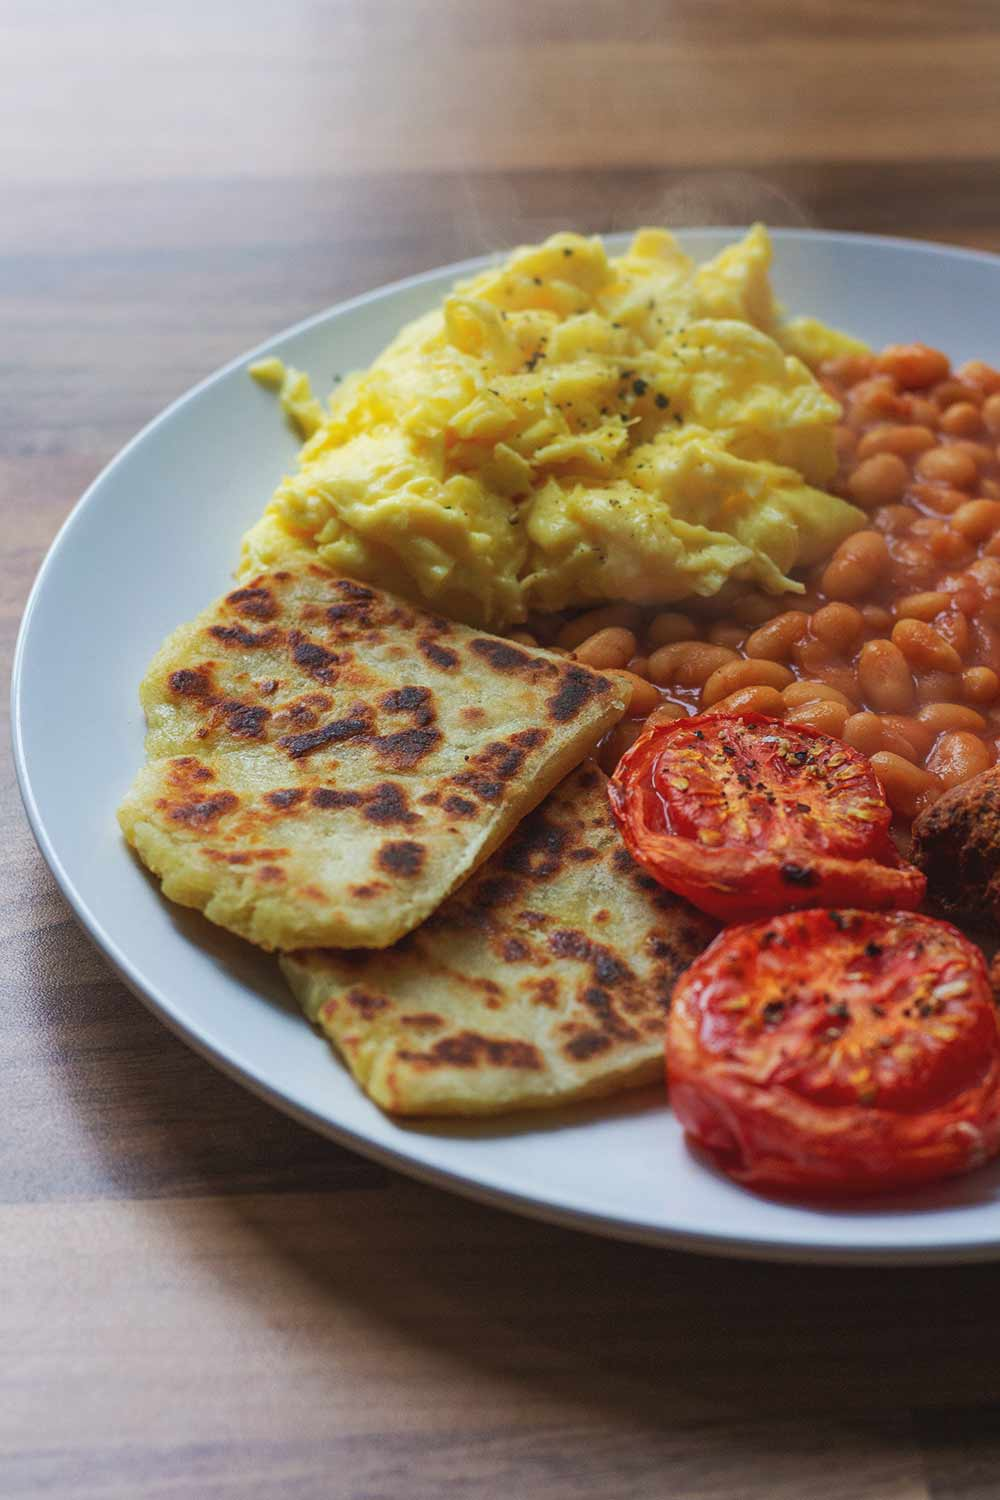 A Scottish breakfast of potato scone, scrambled eggs, tomato, baked beans and vegetarian sausage